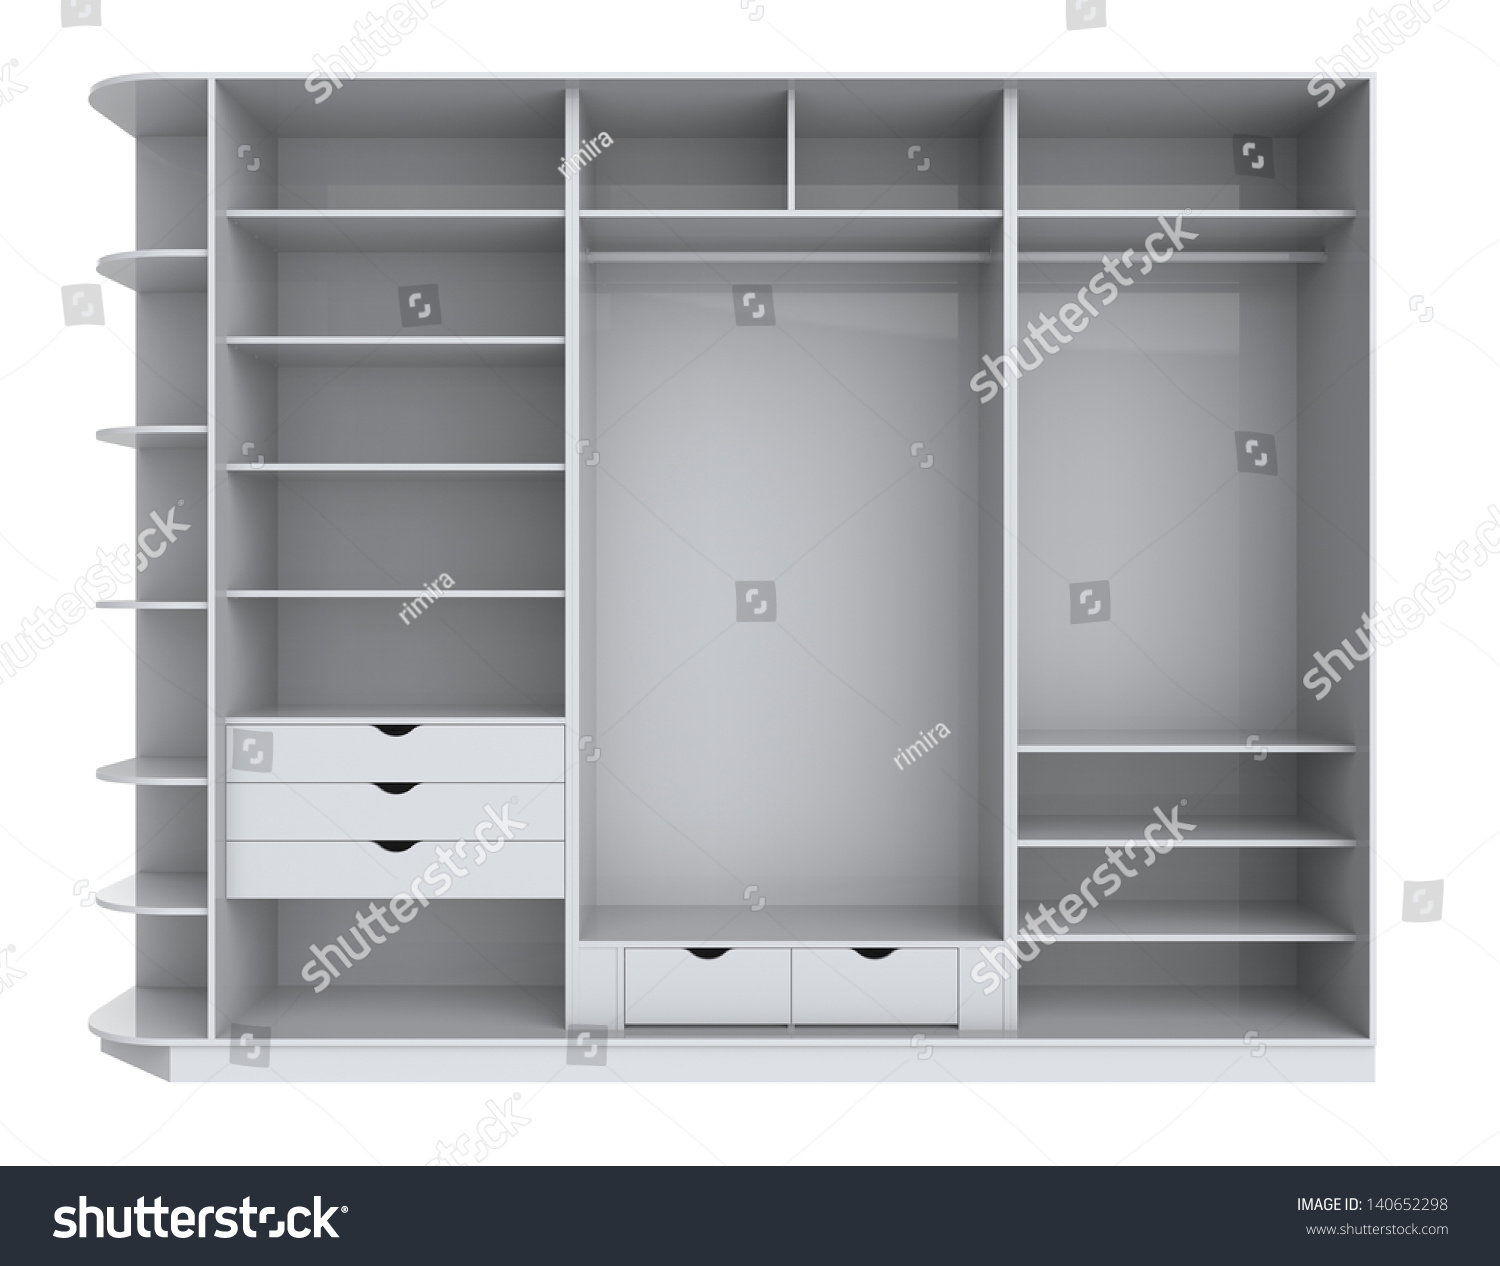 Empty Cupboard Cartoon: Wardrobe With Empty Shelves On A White Background Stock